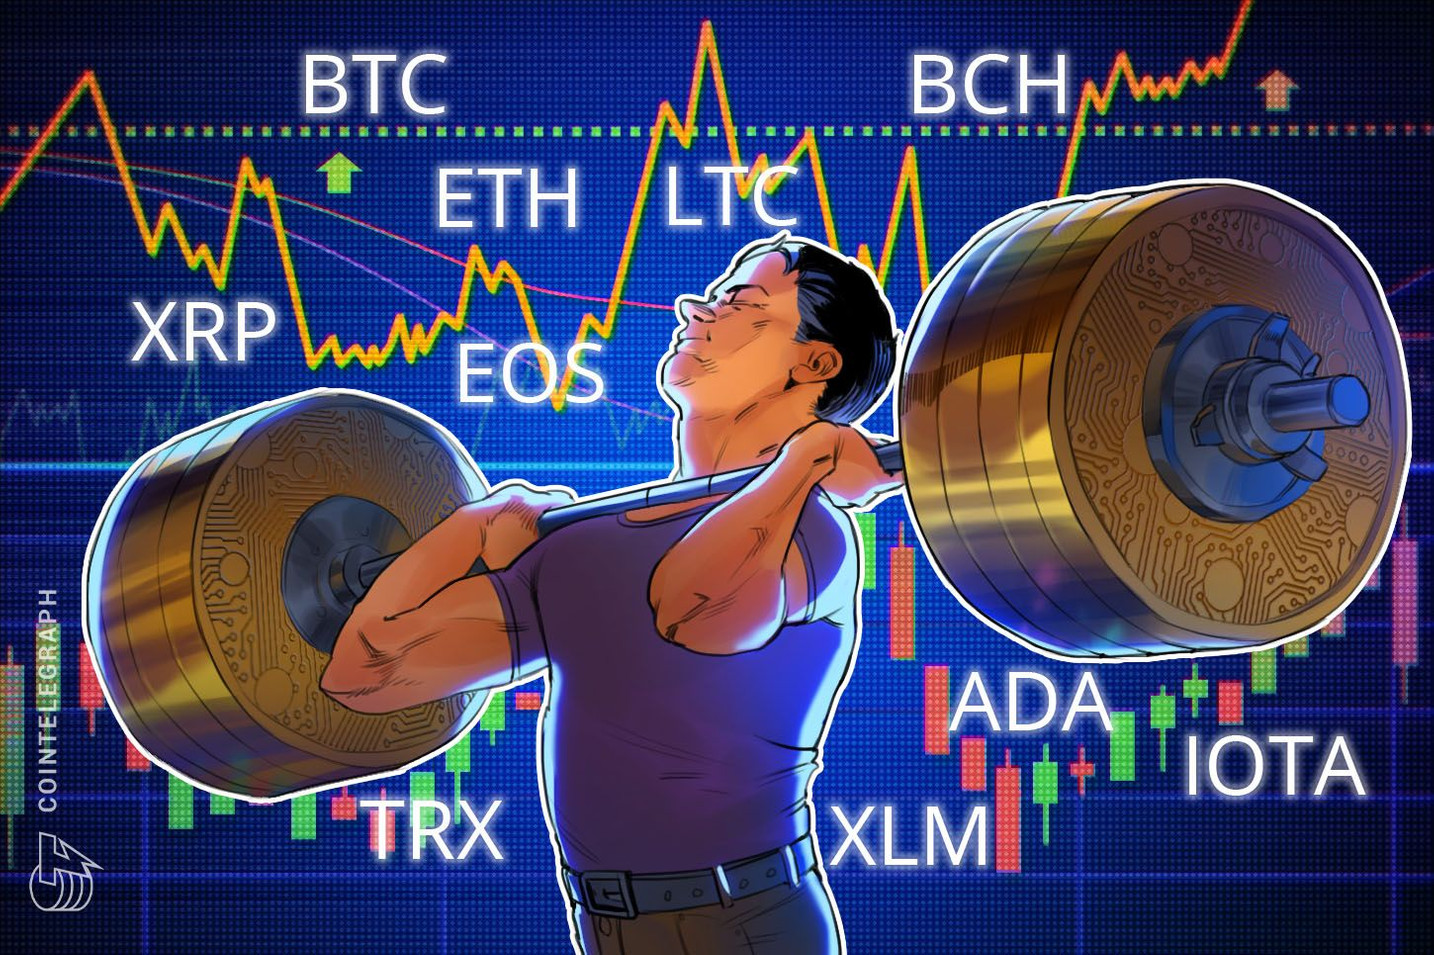 Bitcoin, Ethereum, Ripple, Bitcoin Cash, EOS, Litecoin, Cardano, Stellar, IOTA, TRON: Price Analysis, July 16